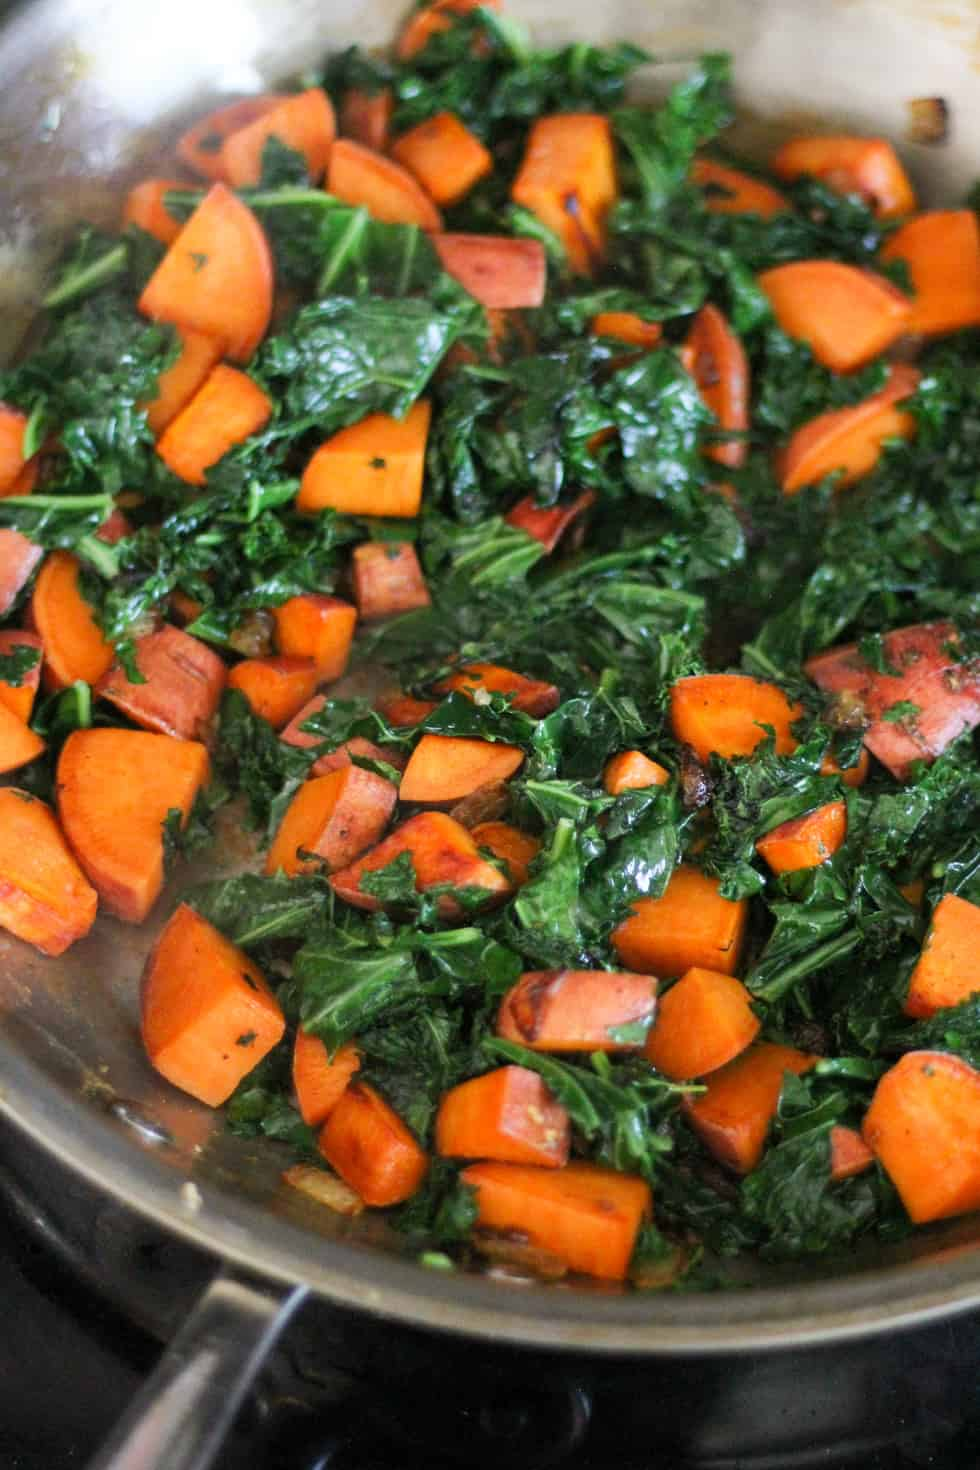 Sweet potatoes and kale in a frypan.